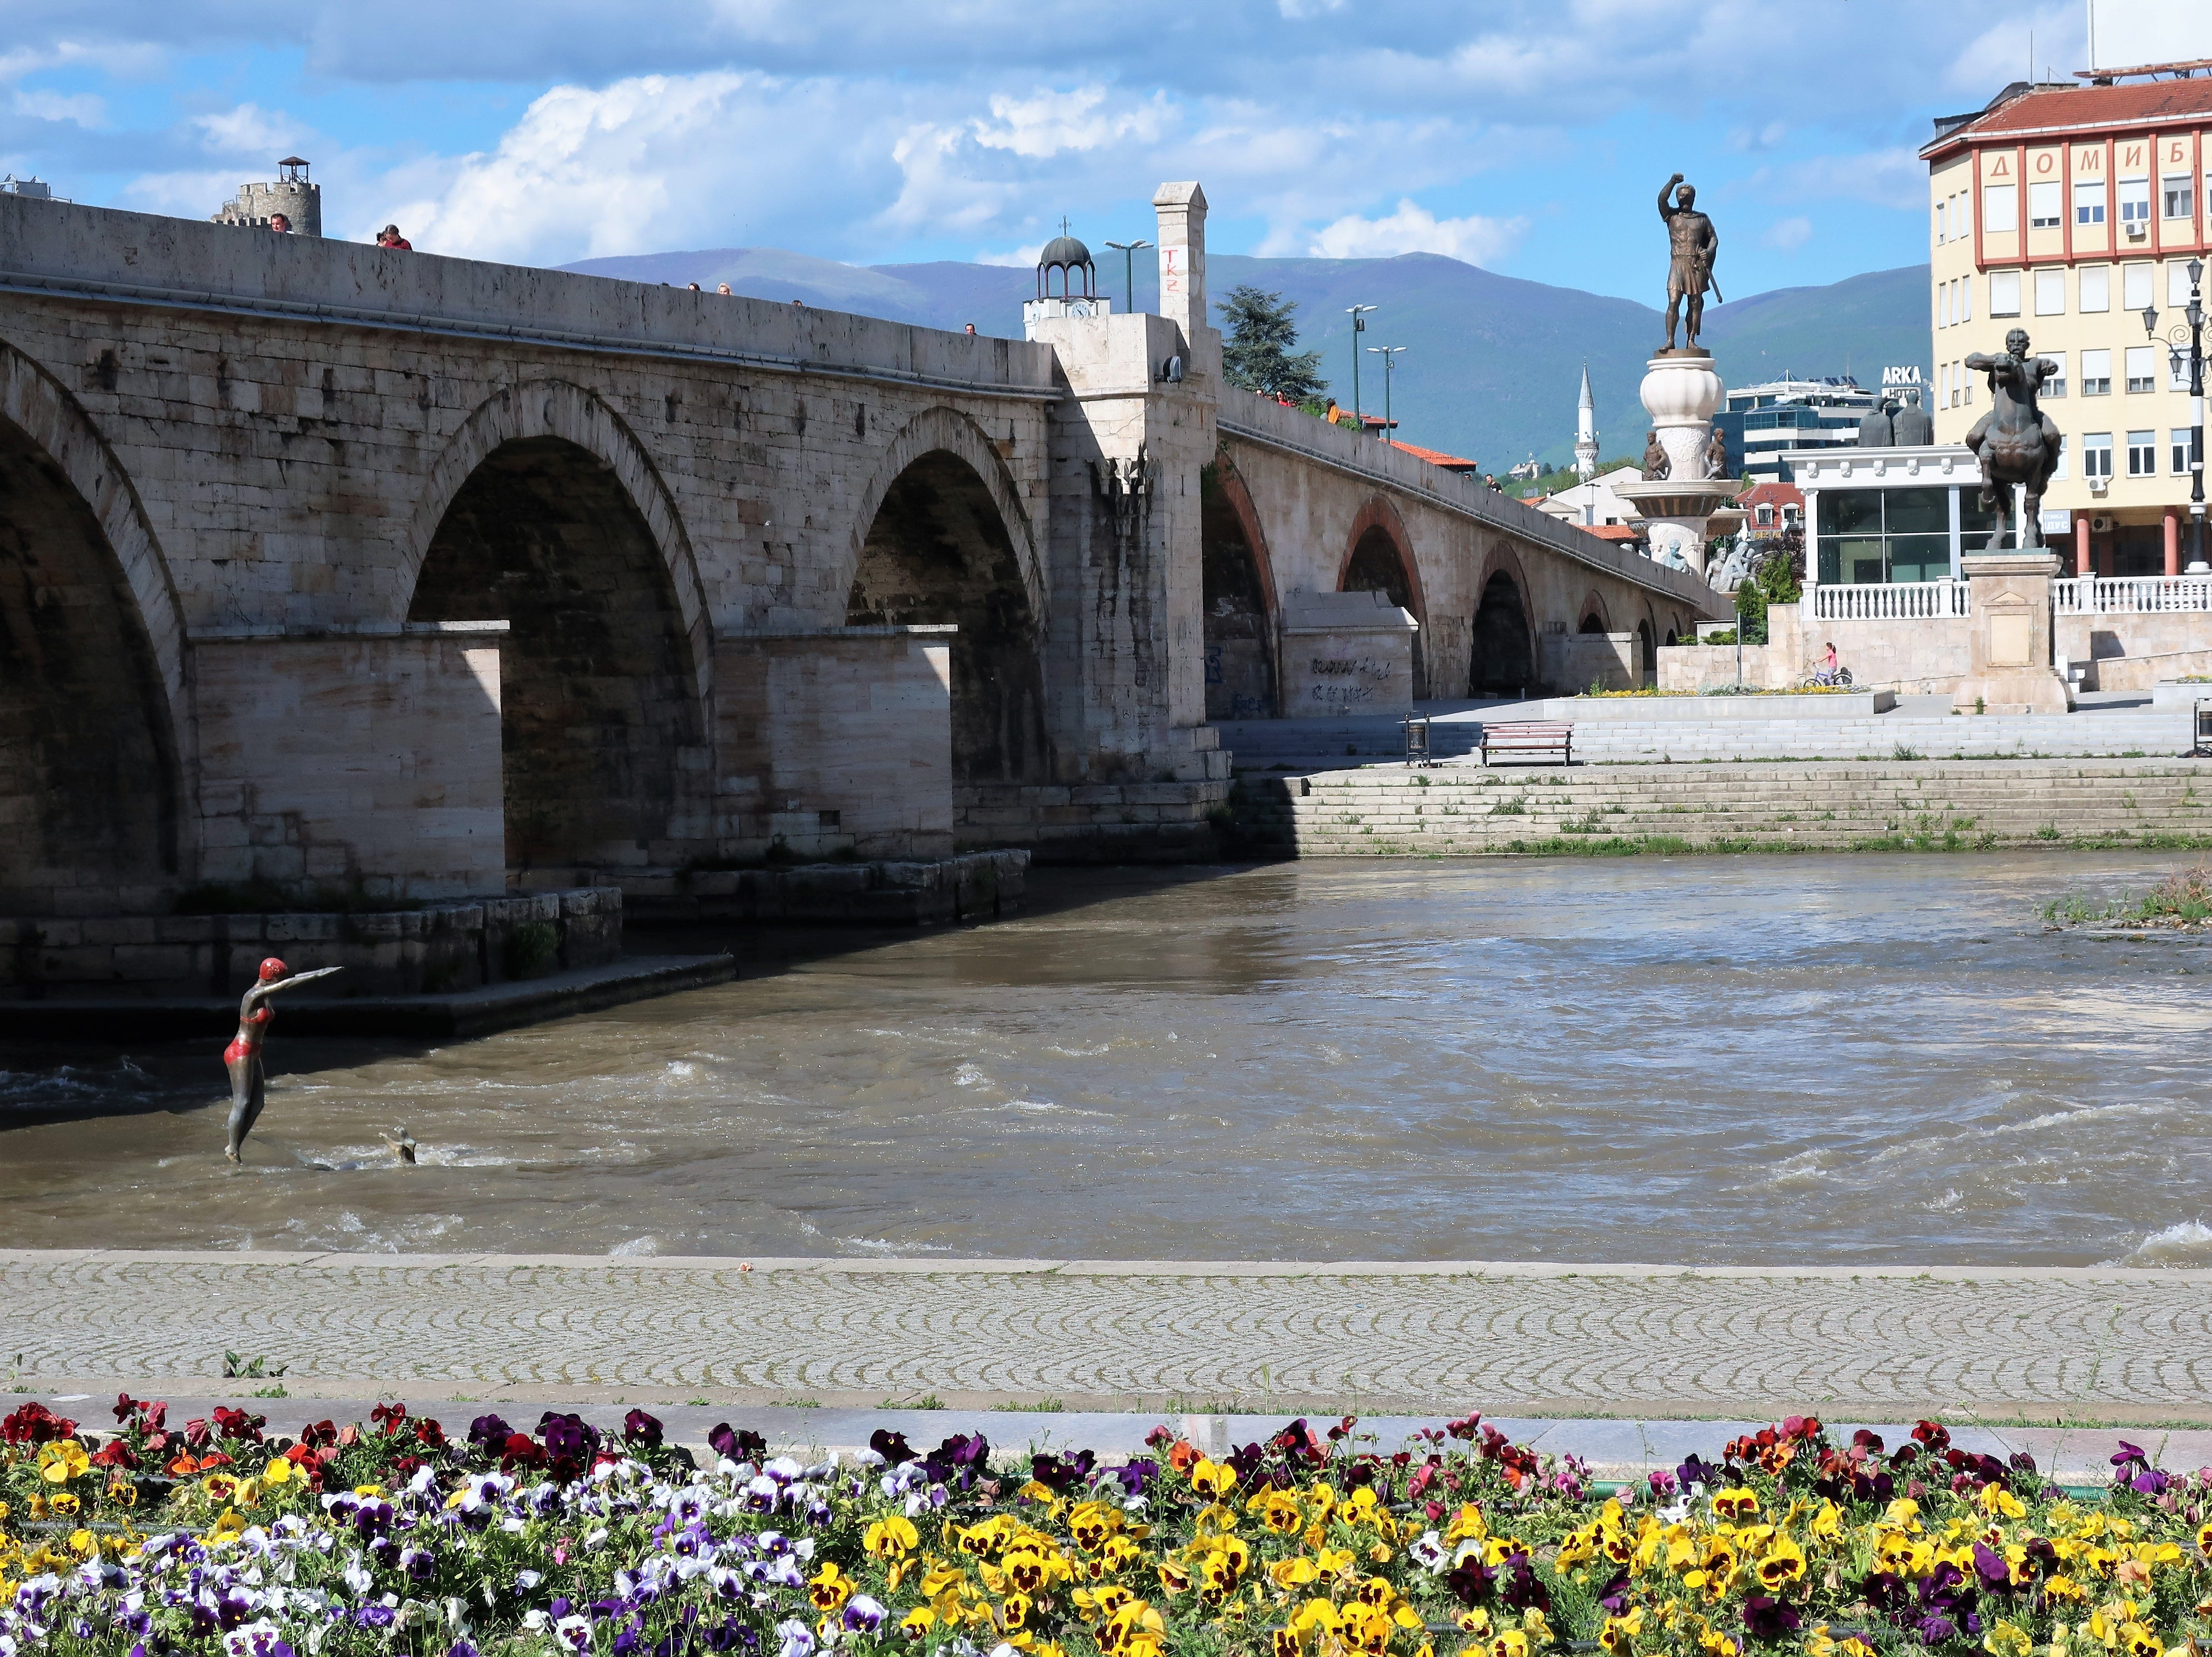 The Vardar River bisects the center of downtown Skopje, North Macedonia.